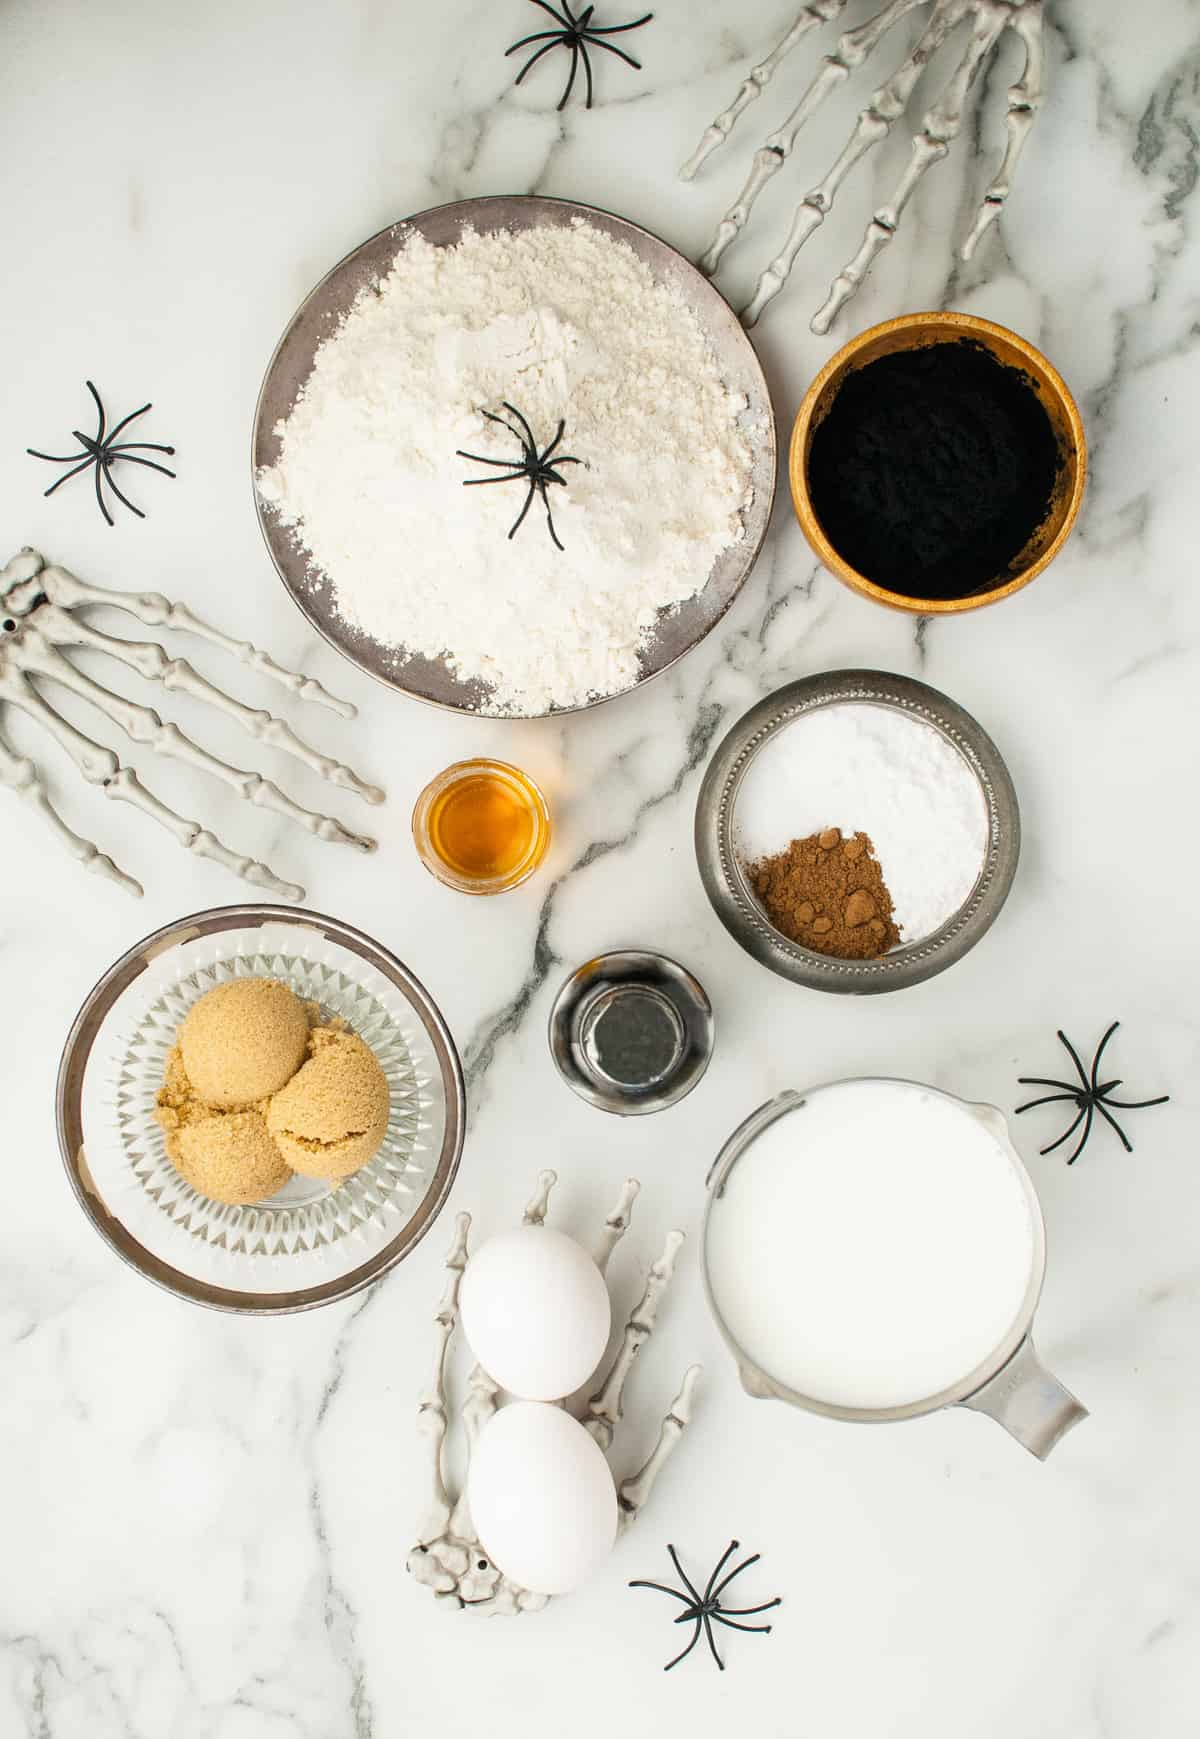 Overhead view of ingredients needed for recipe, on a marble background.